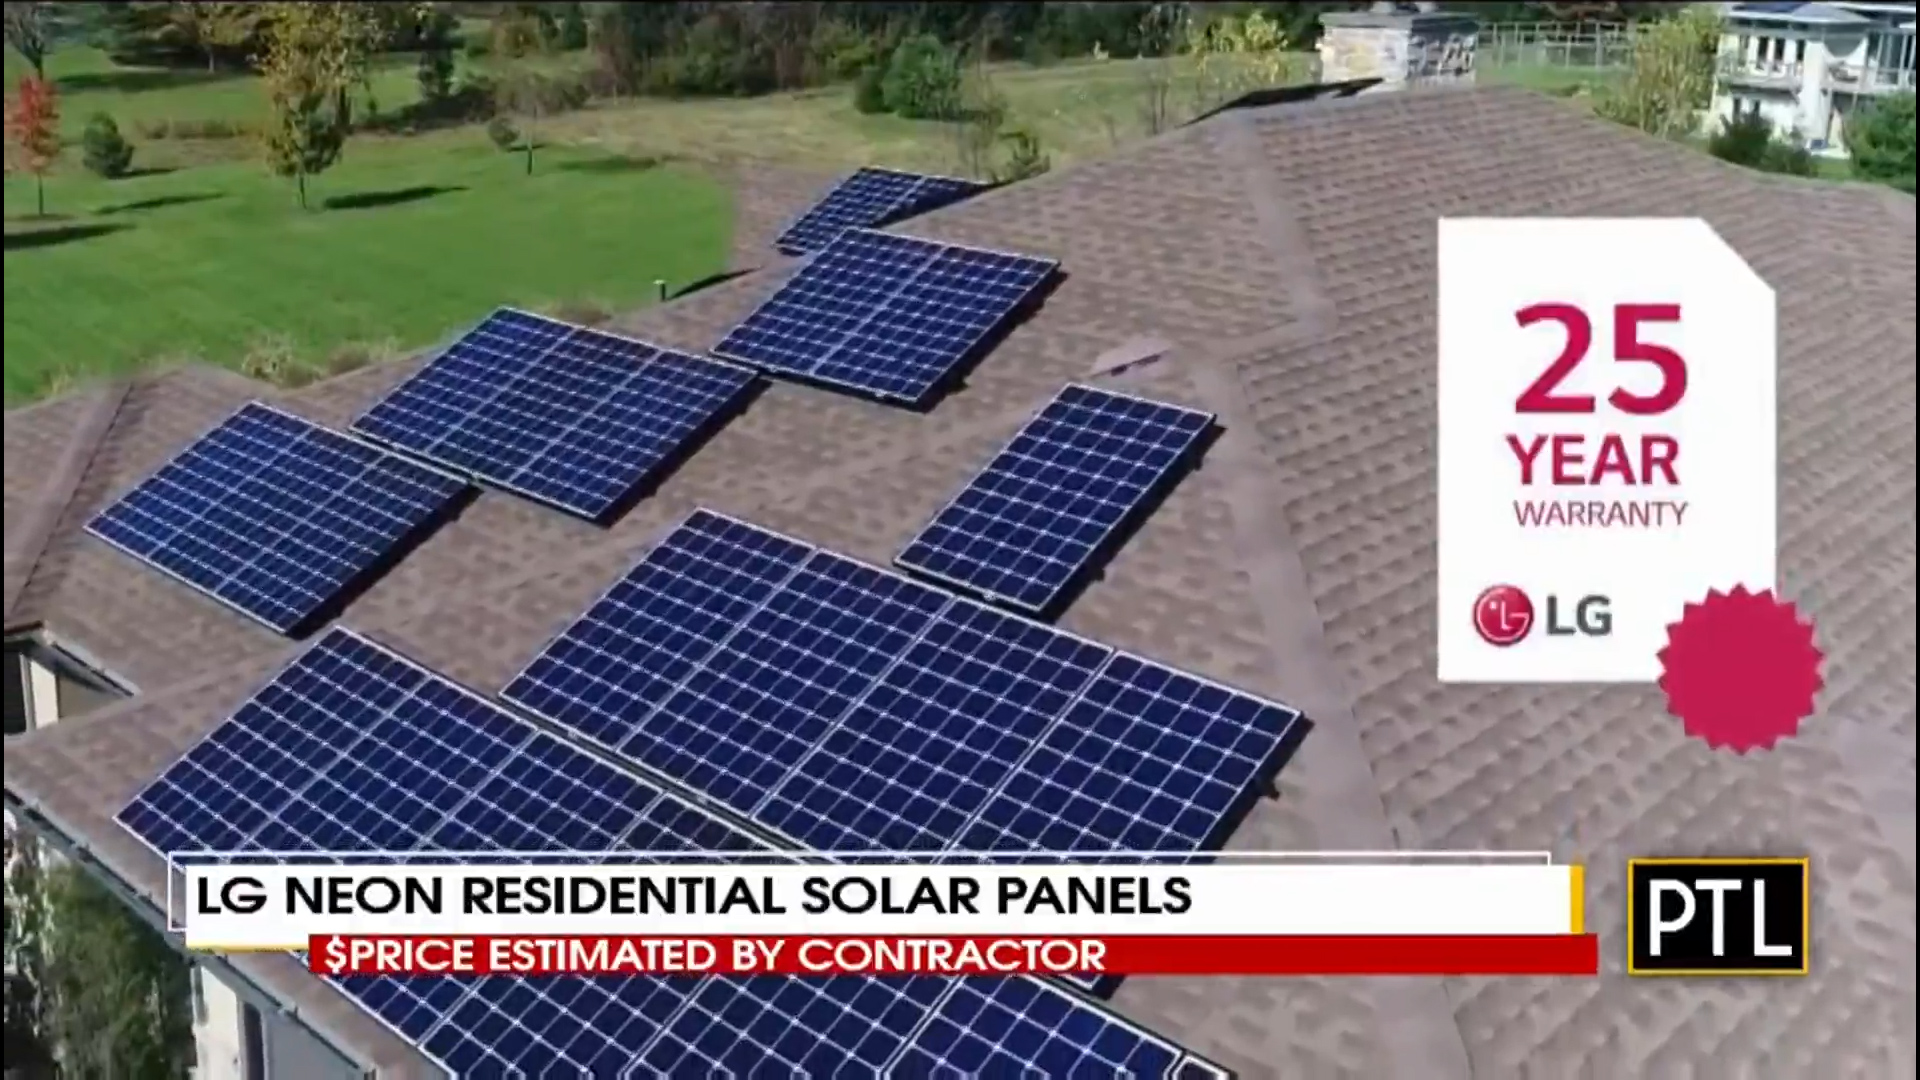 LG NeON RESIDENTIAL SOLAR PANELS     - $ Estimate by Certified Contractor Shop Now